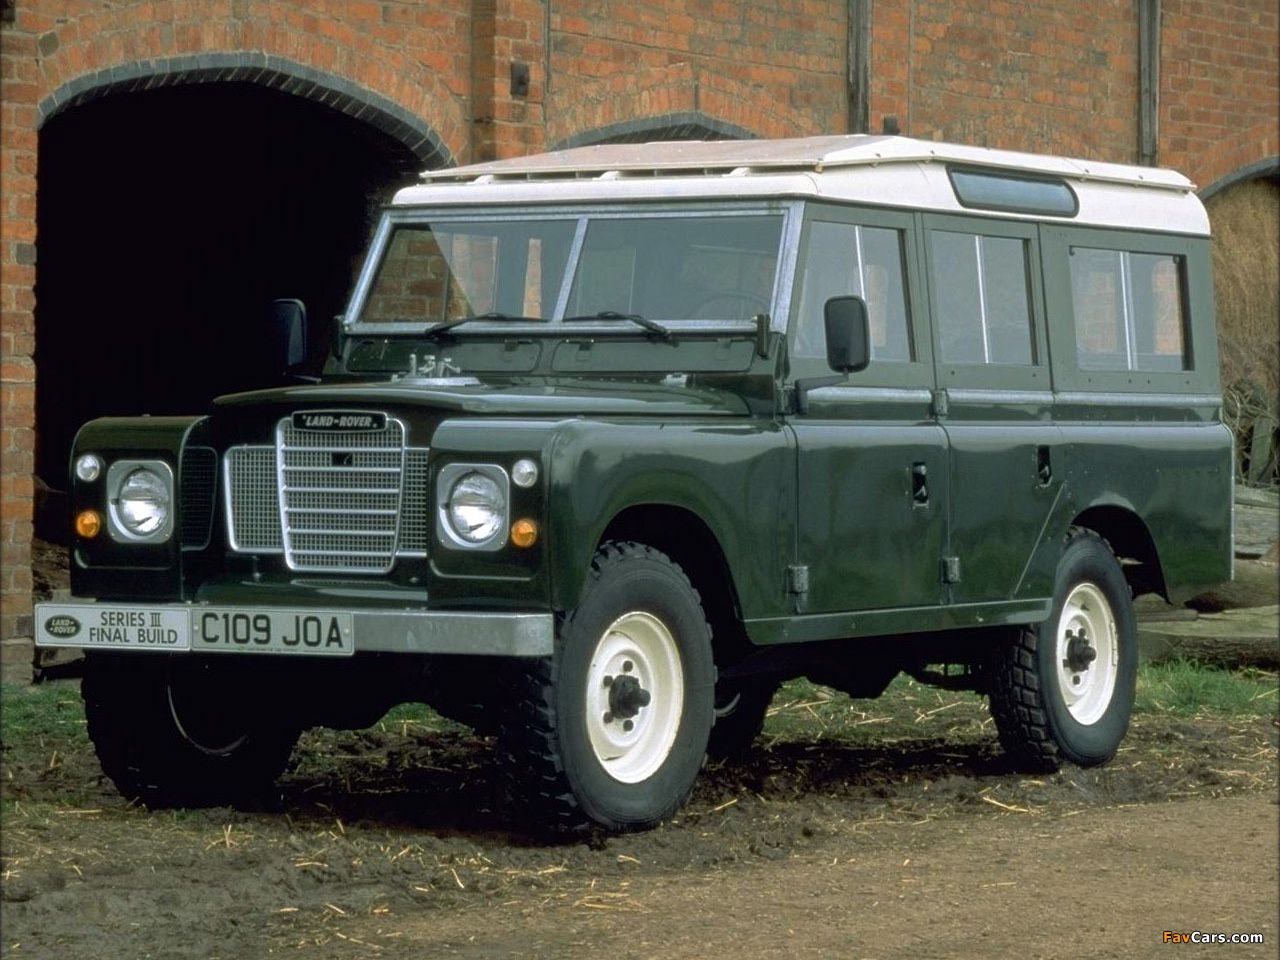 Series iii land rover in coningston green k s favorite car ever autos land roverjeeps